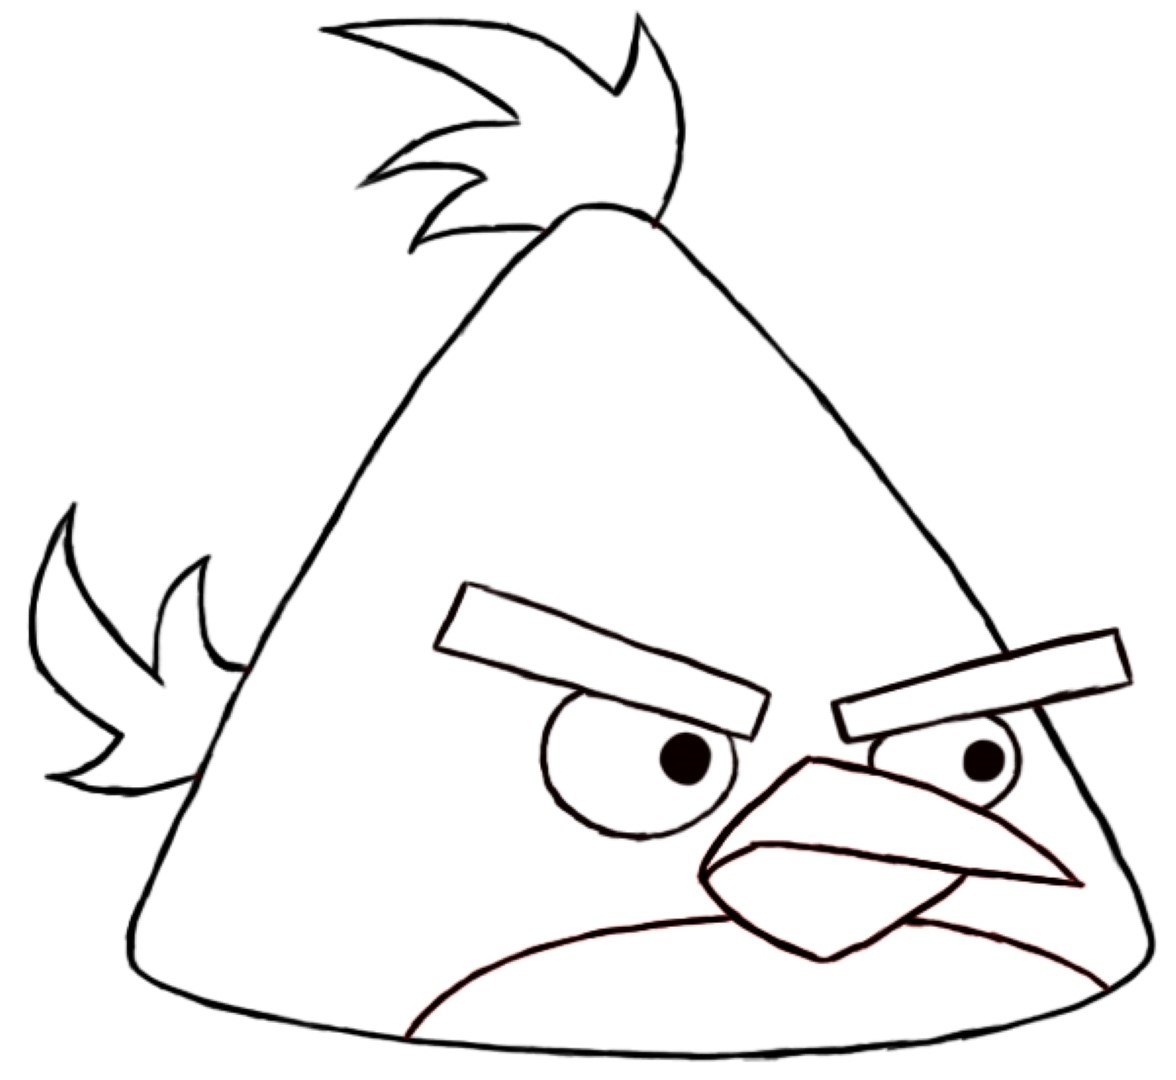 Angry Birds Coloring Pages - Simple Angry Birds Coloring Pages Coloringsuite